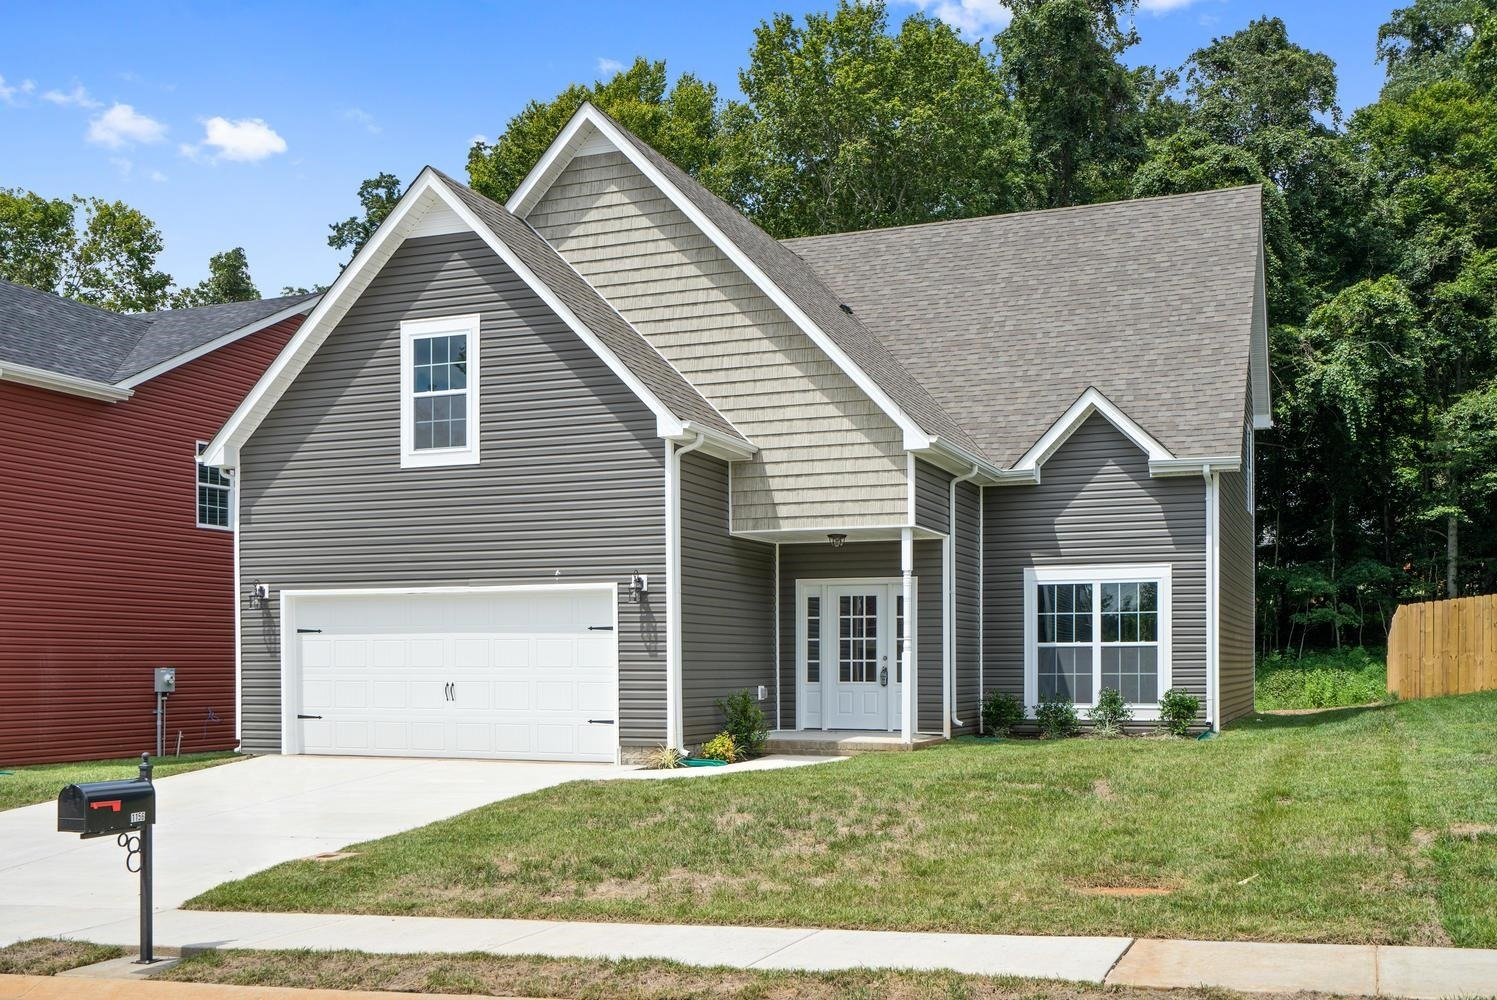 Homes for Sale in Eagles Bluff Subdivision Clarksville TN